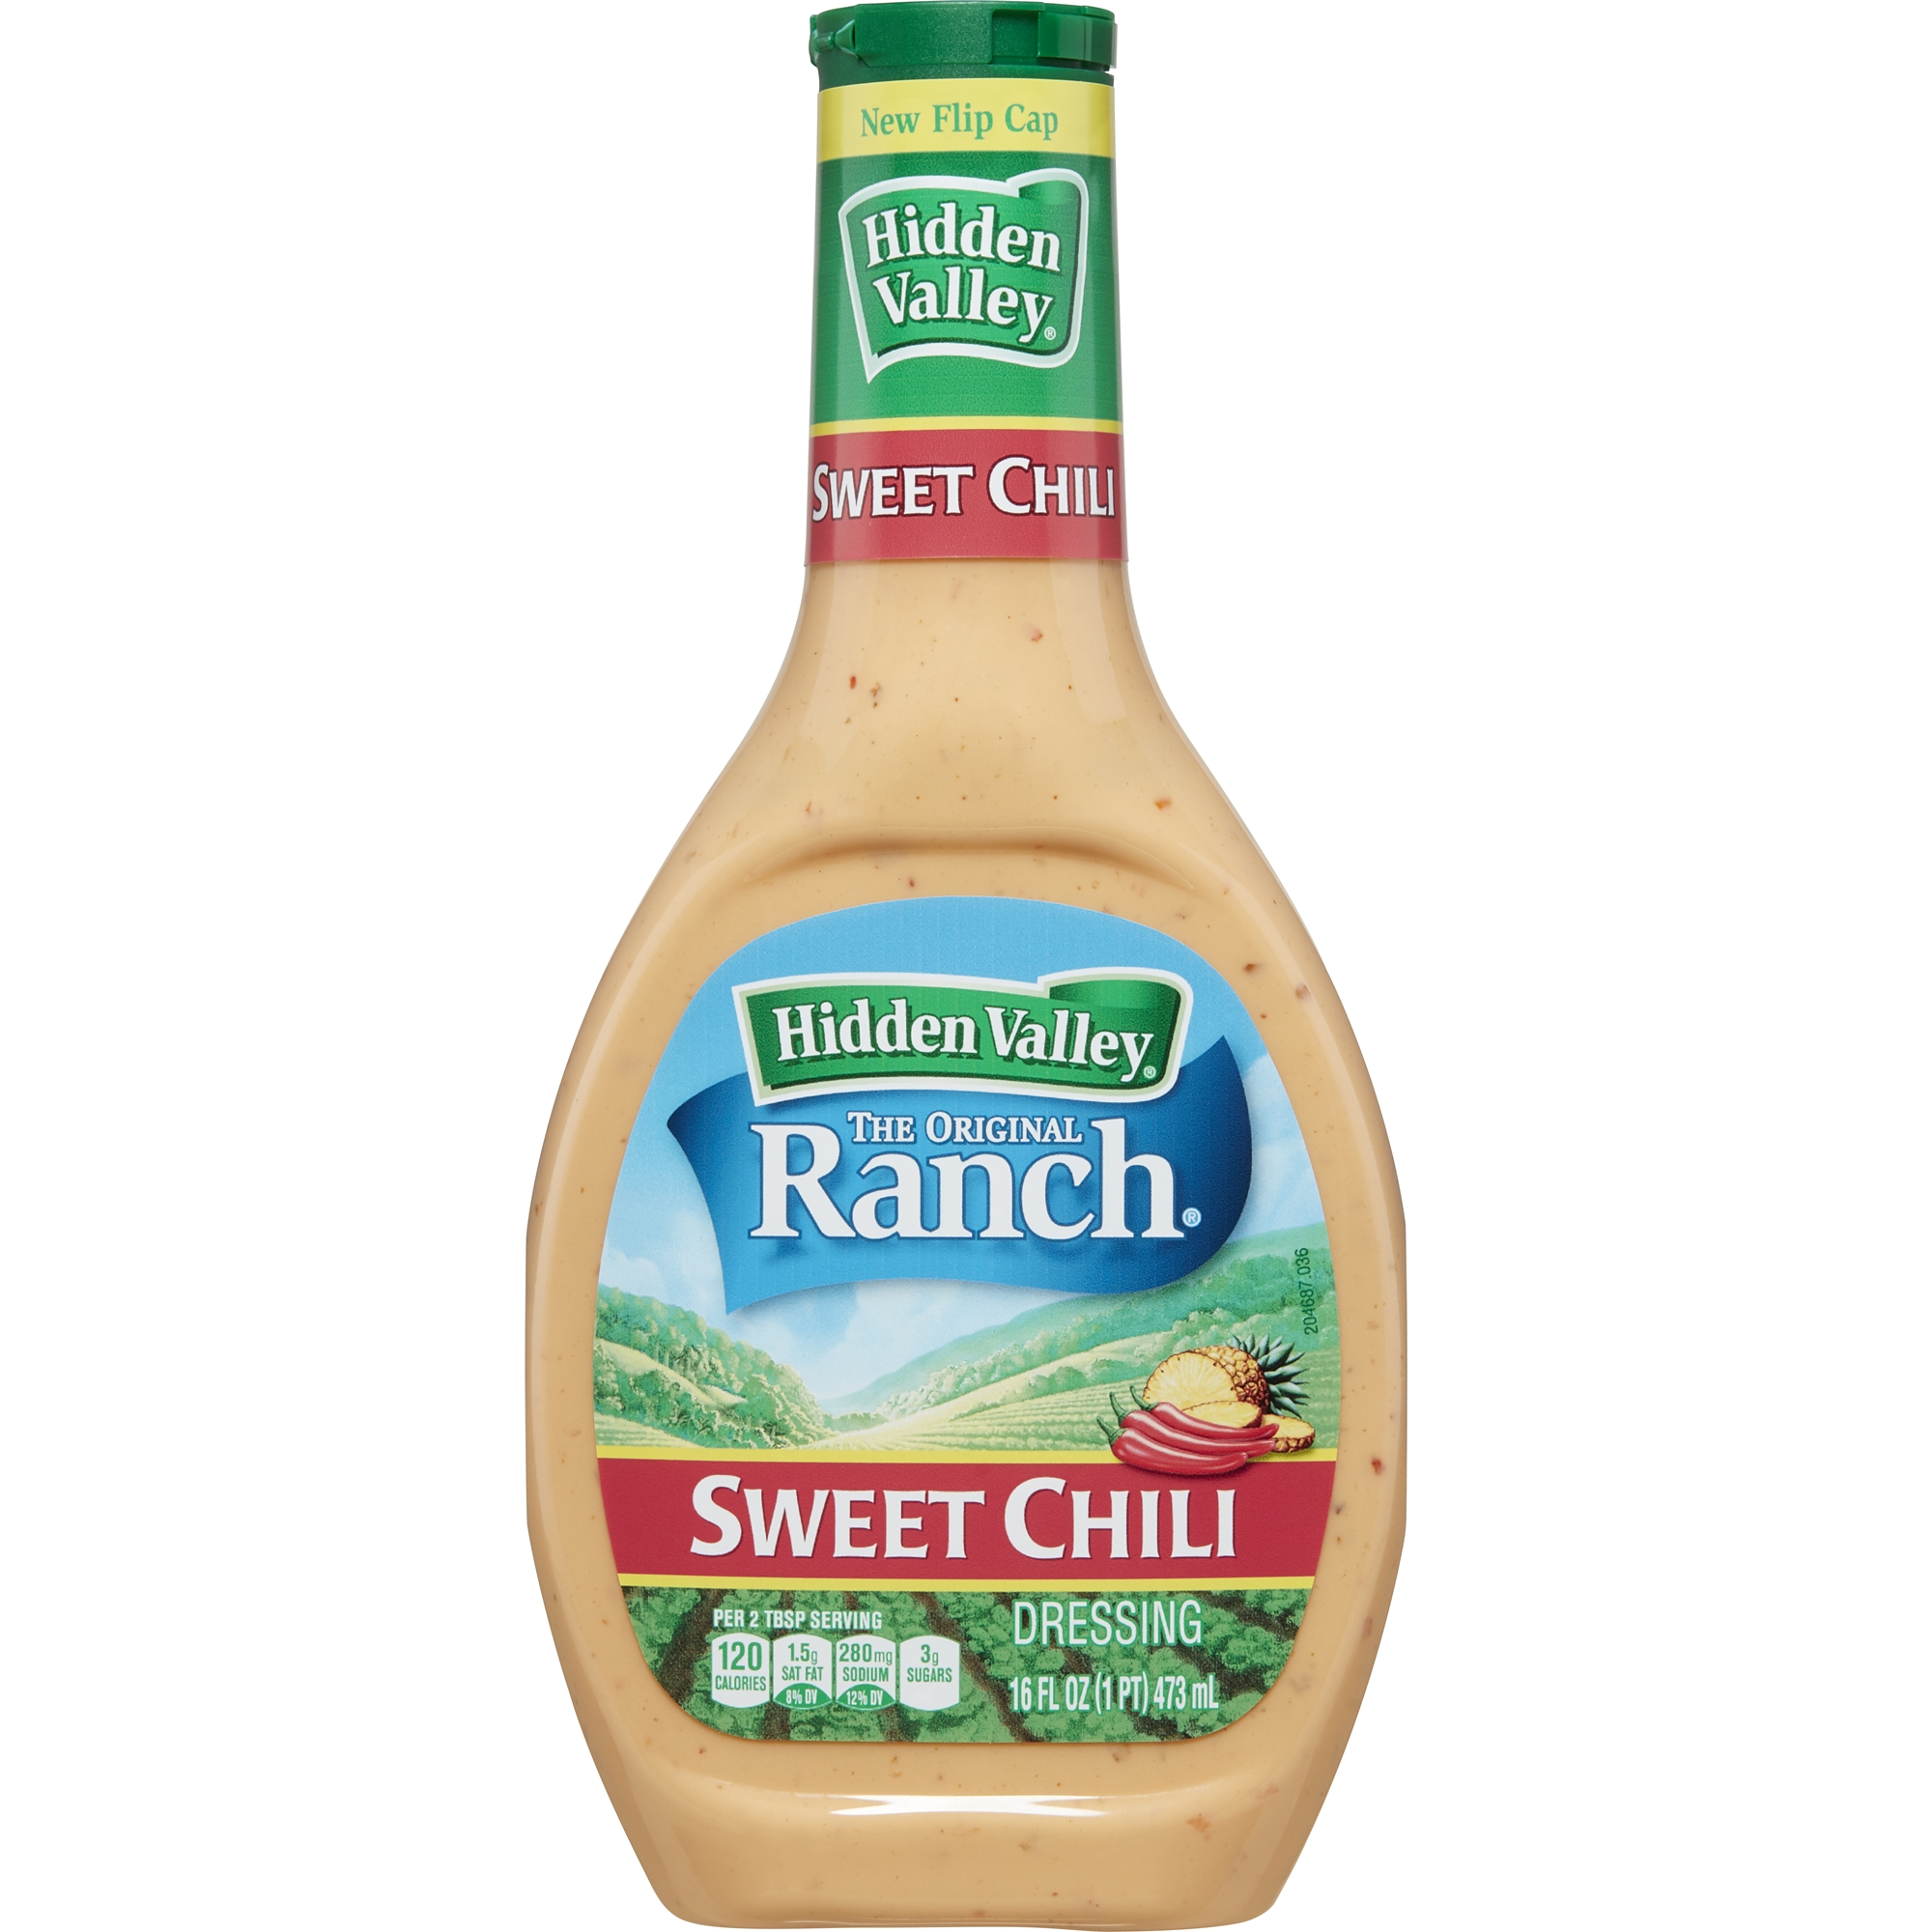 Hidden Valley Sweet Chill Ranch Salad Dressing & Topping, Gluten Free - 16 oz Bottle